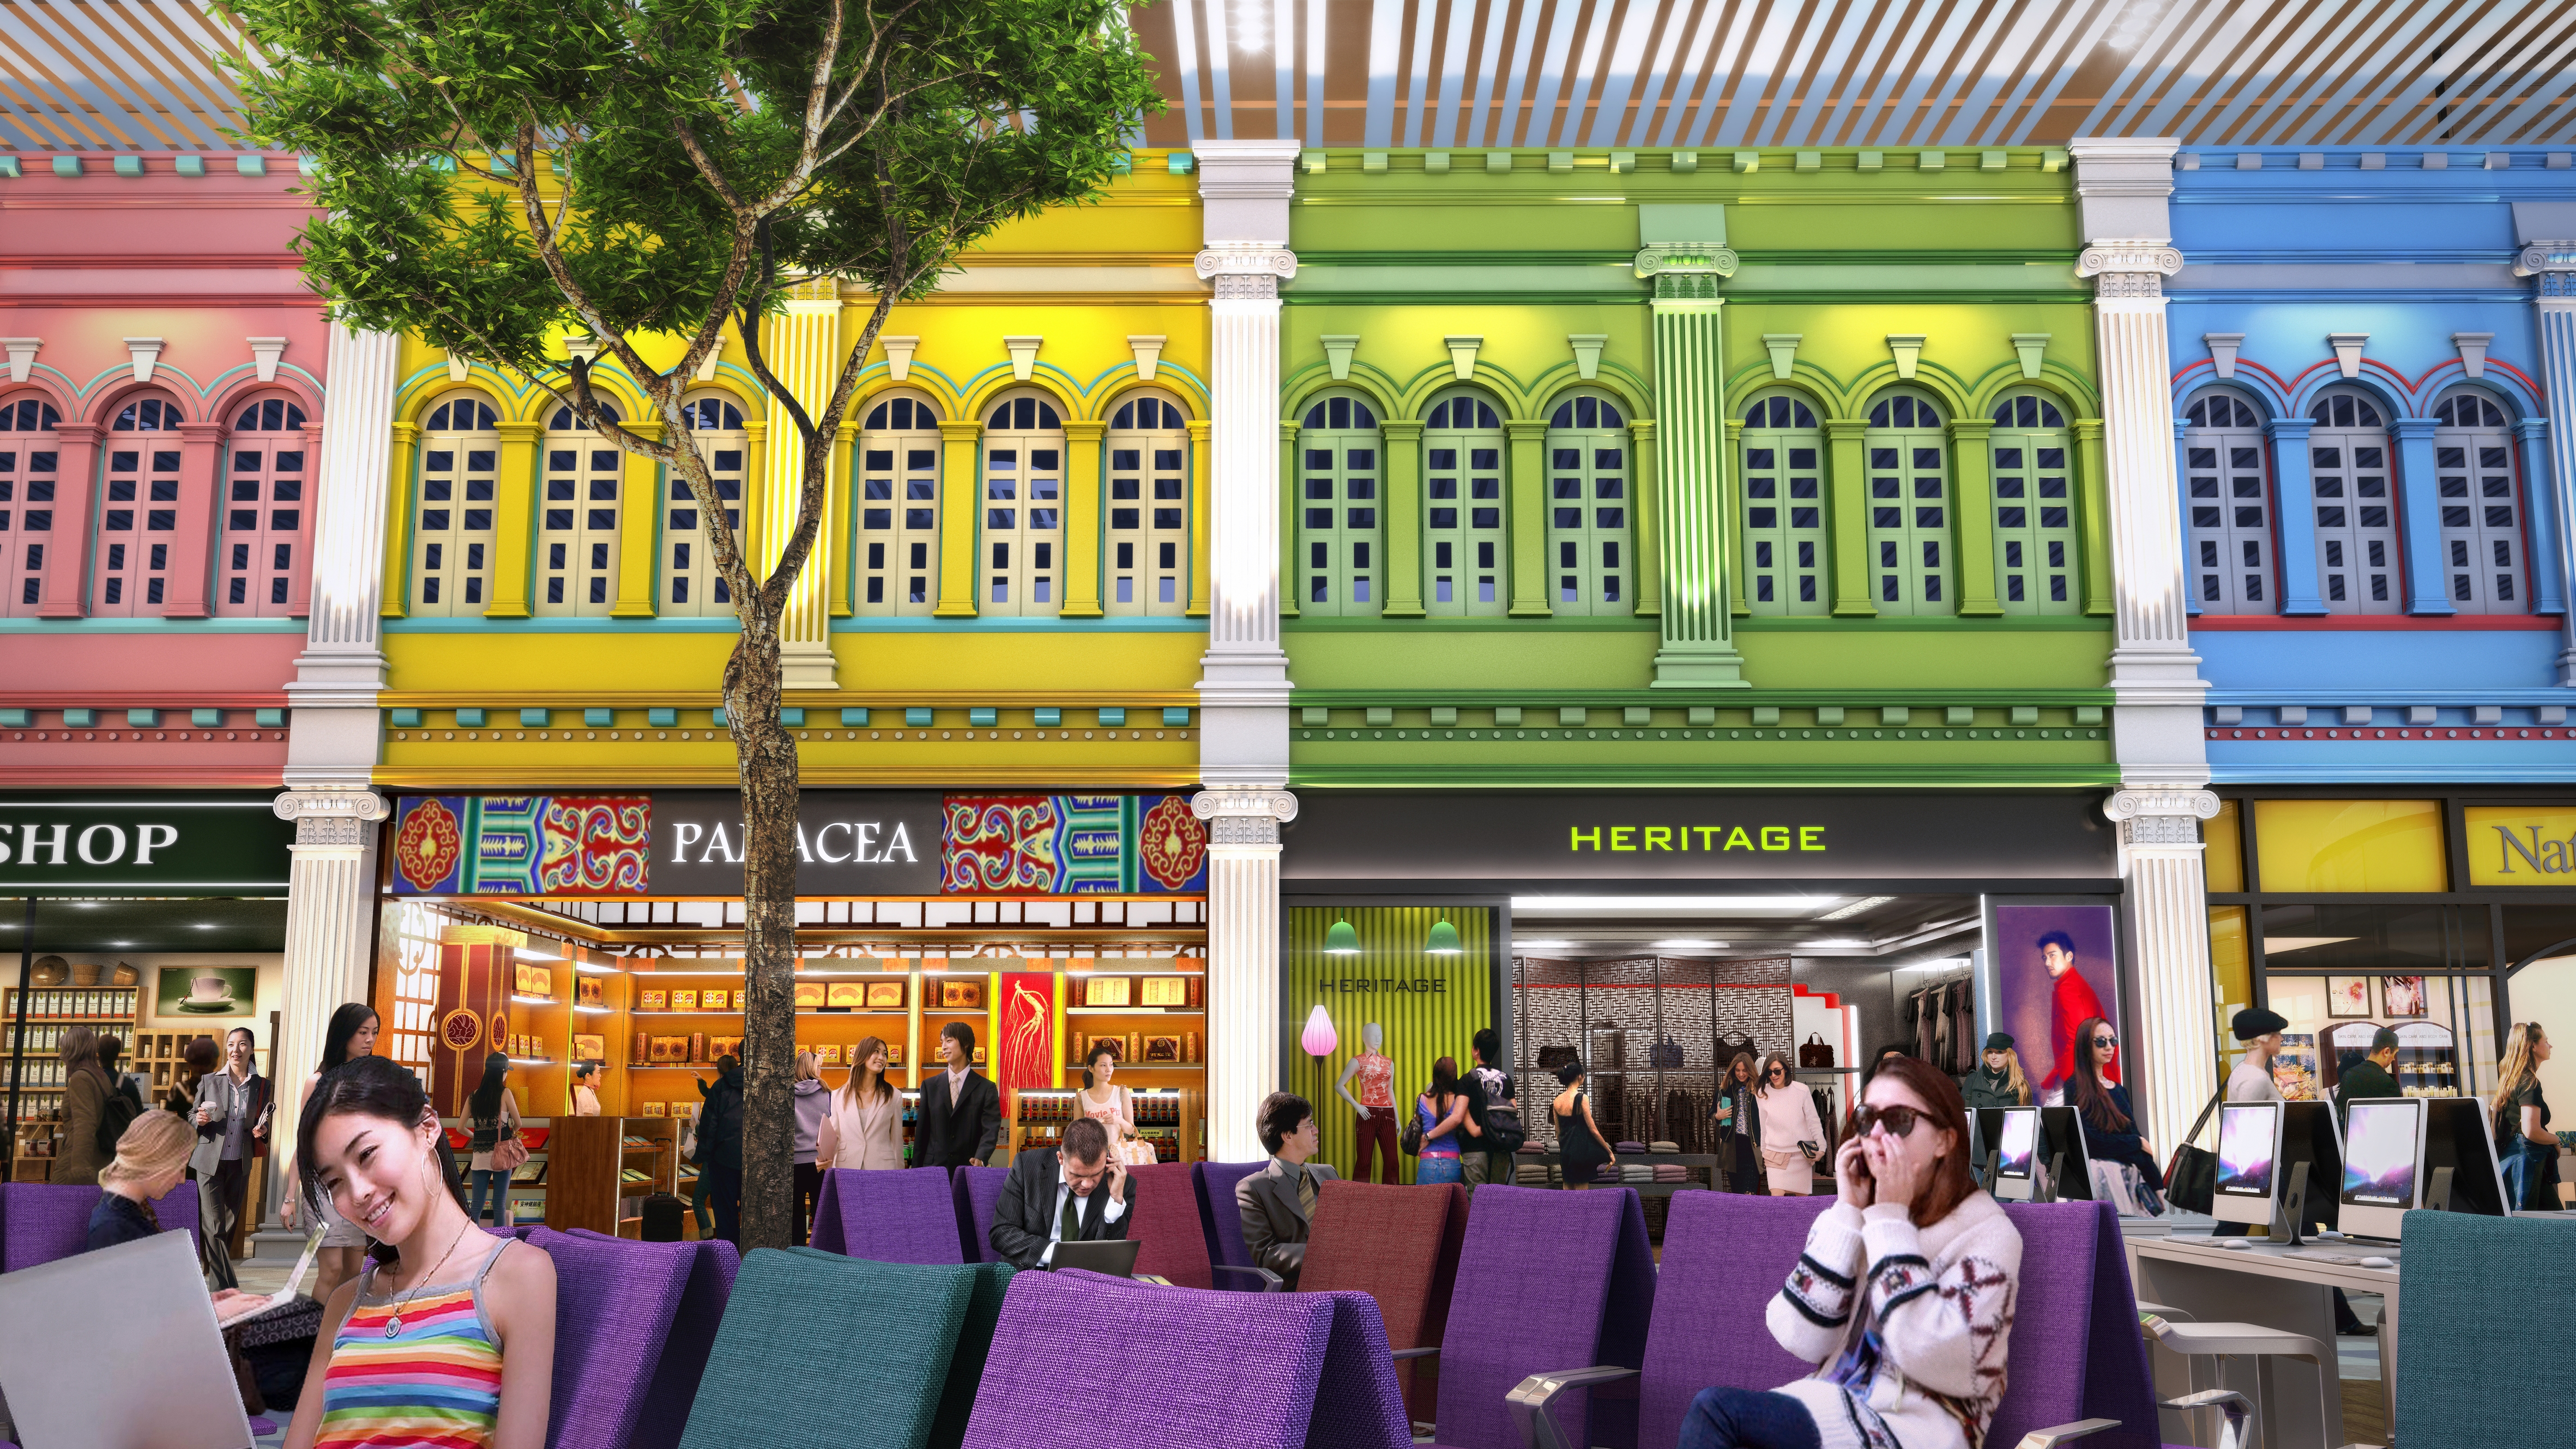 Singapore Changi Airport Showcases Designs for New Terminal 4 | TheDesignAir